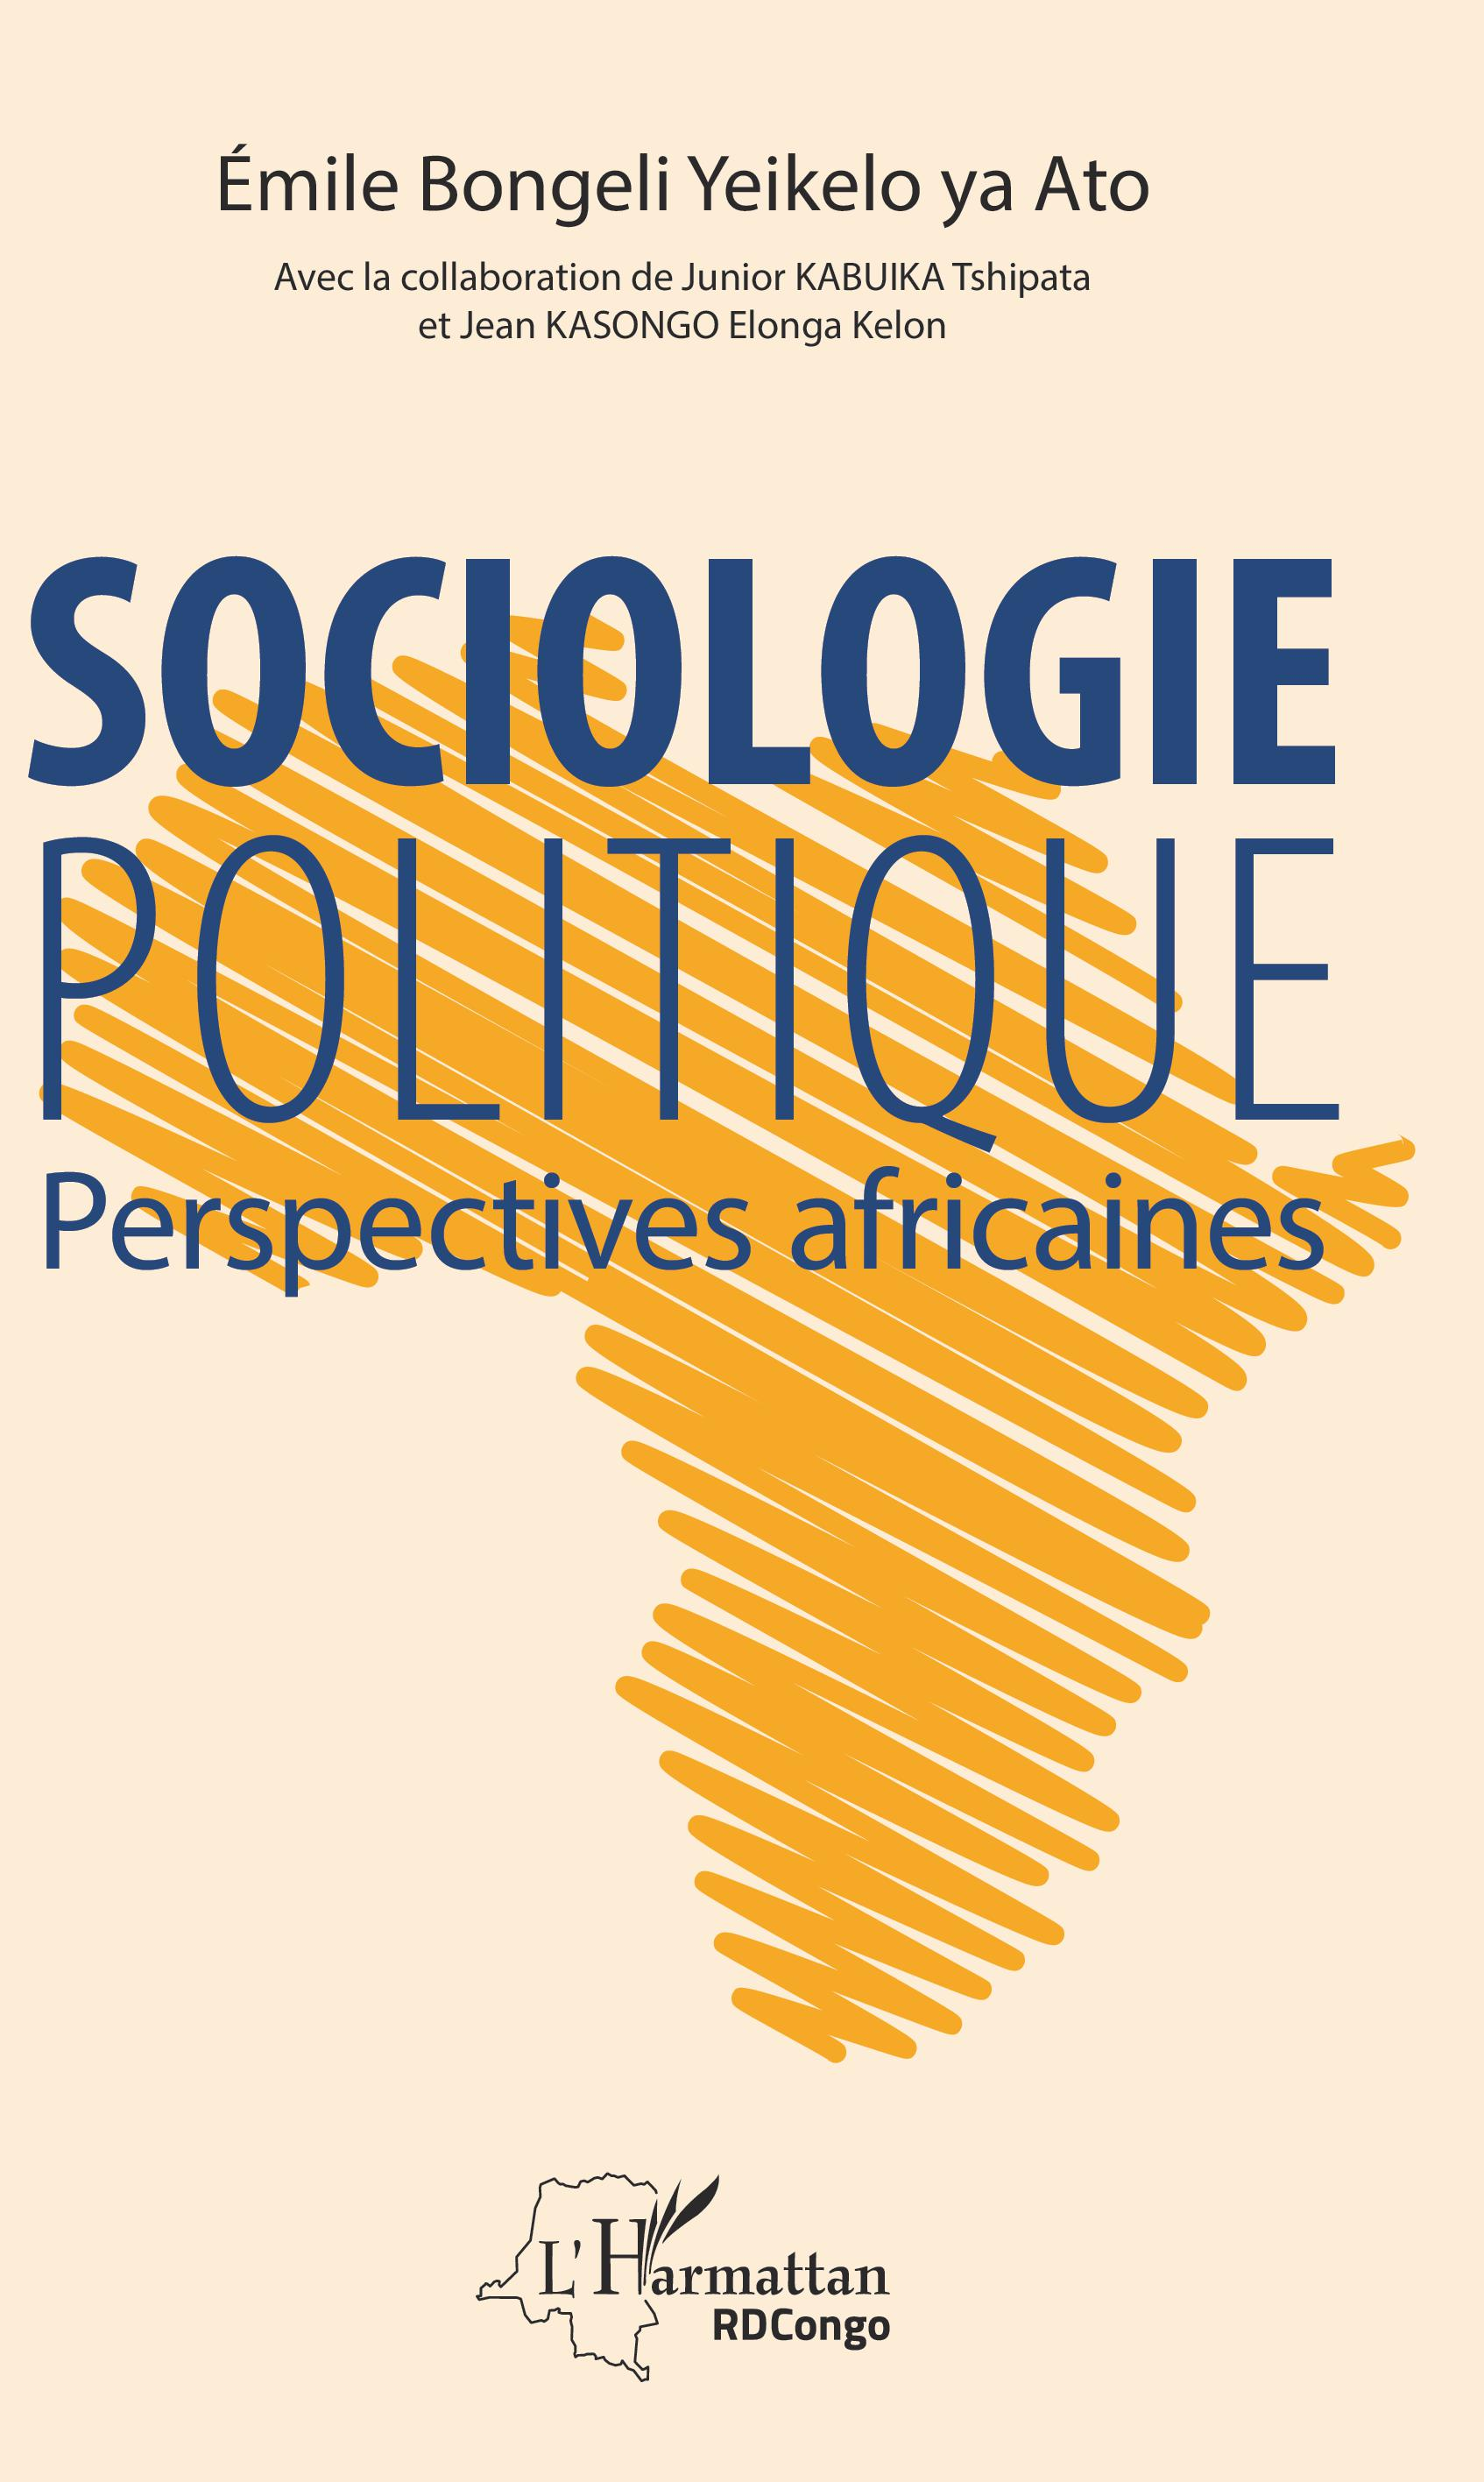 Sociologie politique. Perspectives africaines